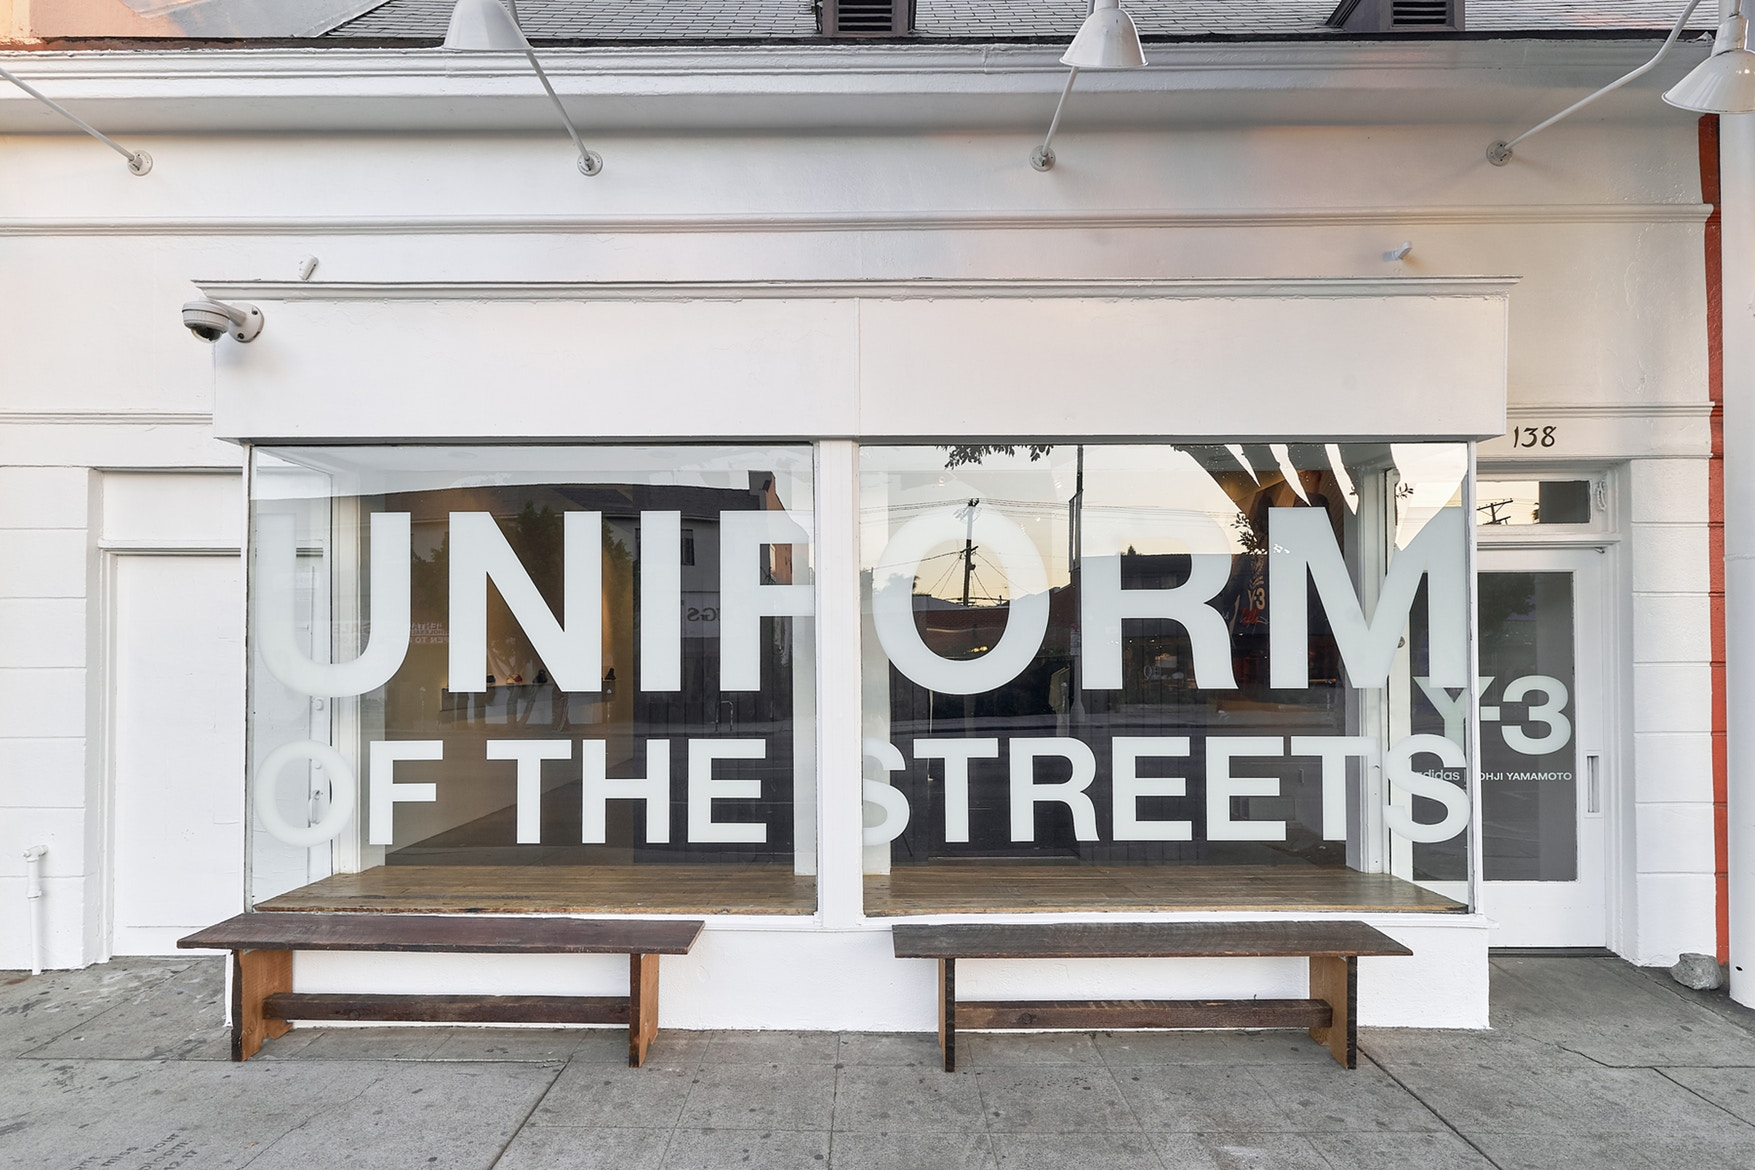 New Y-3 Store Opened in Los Angeles